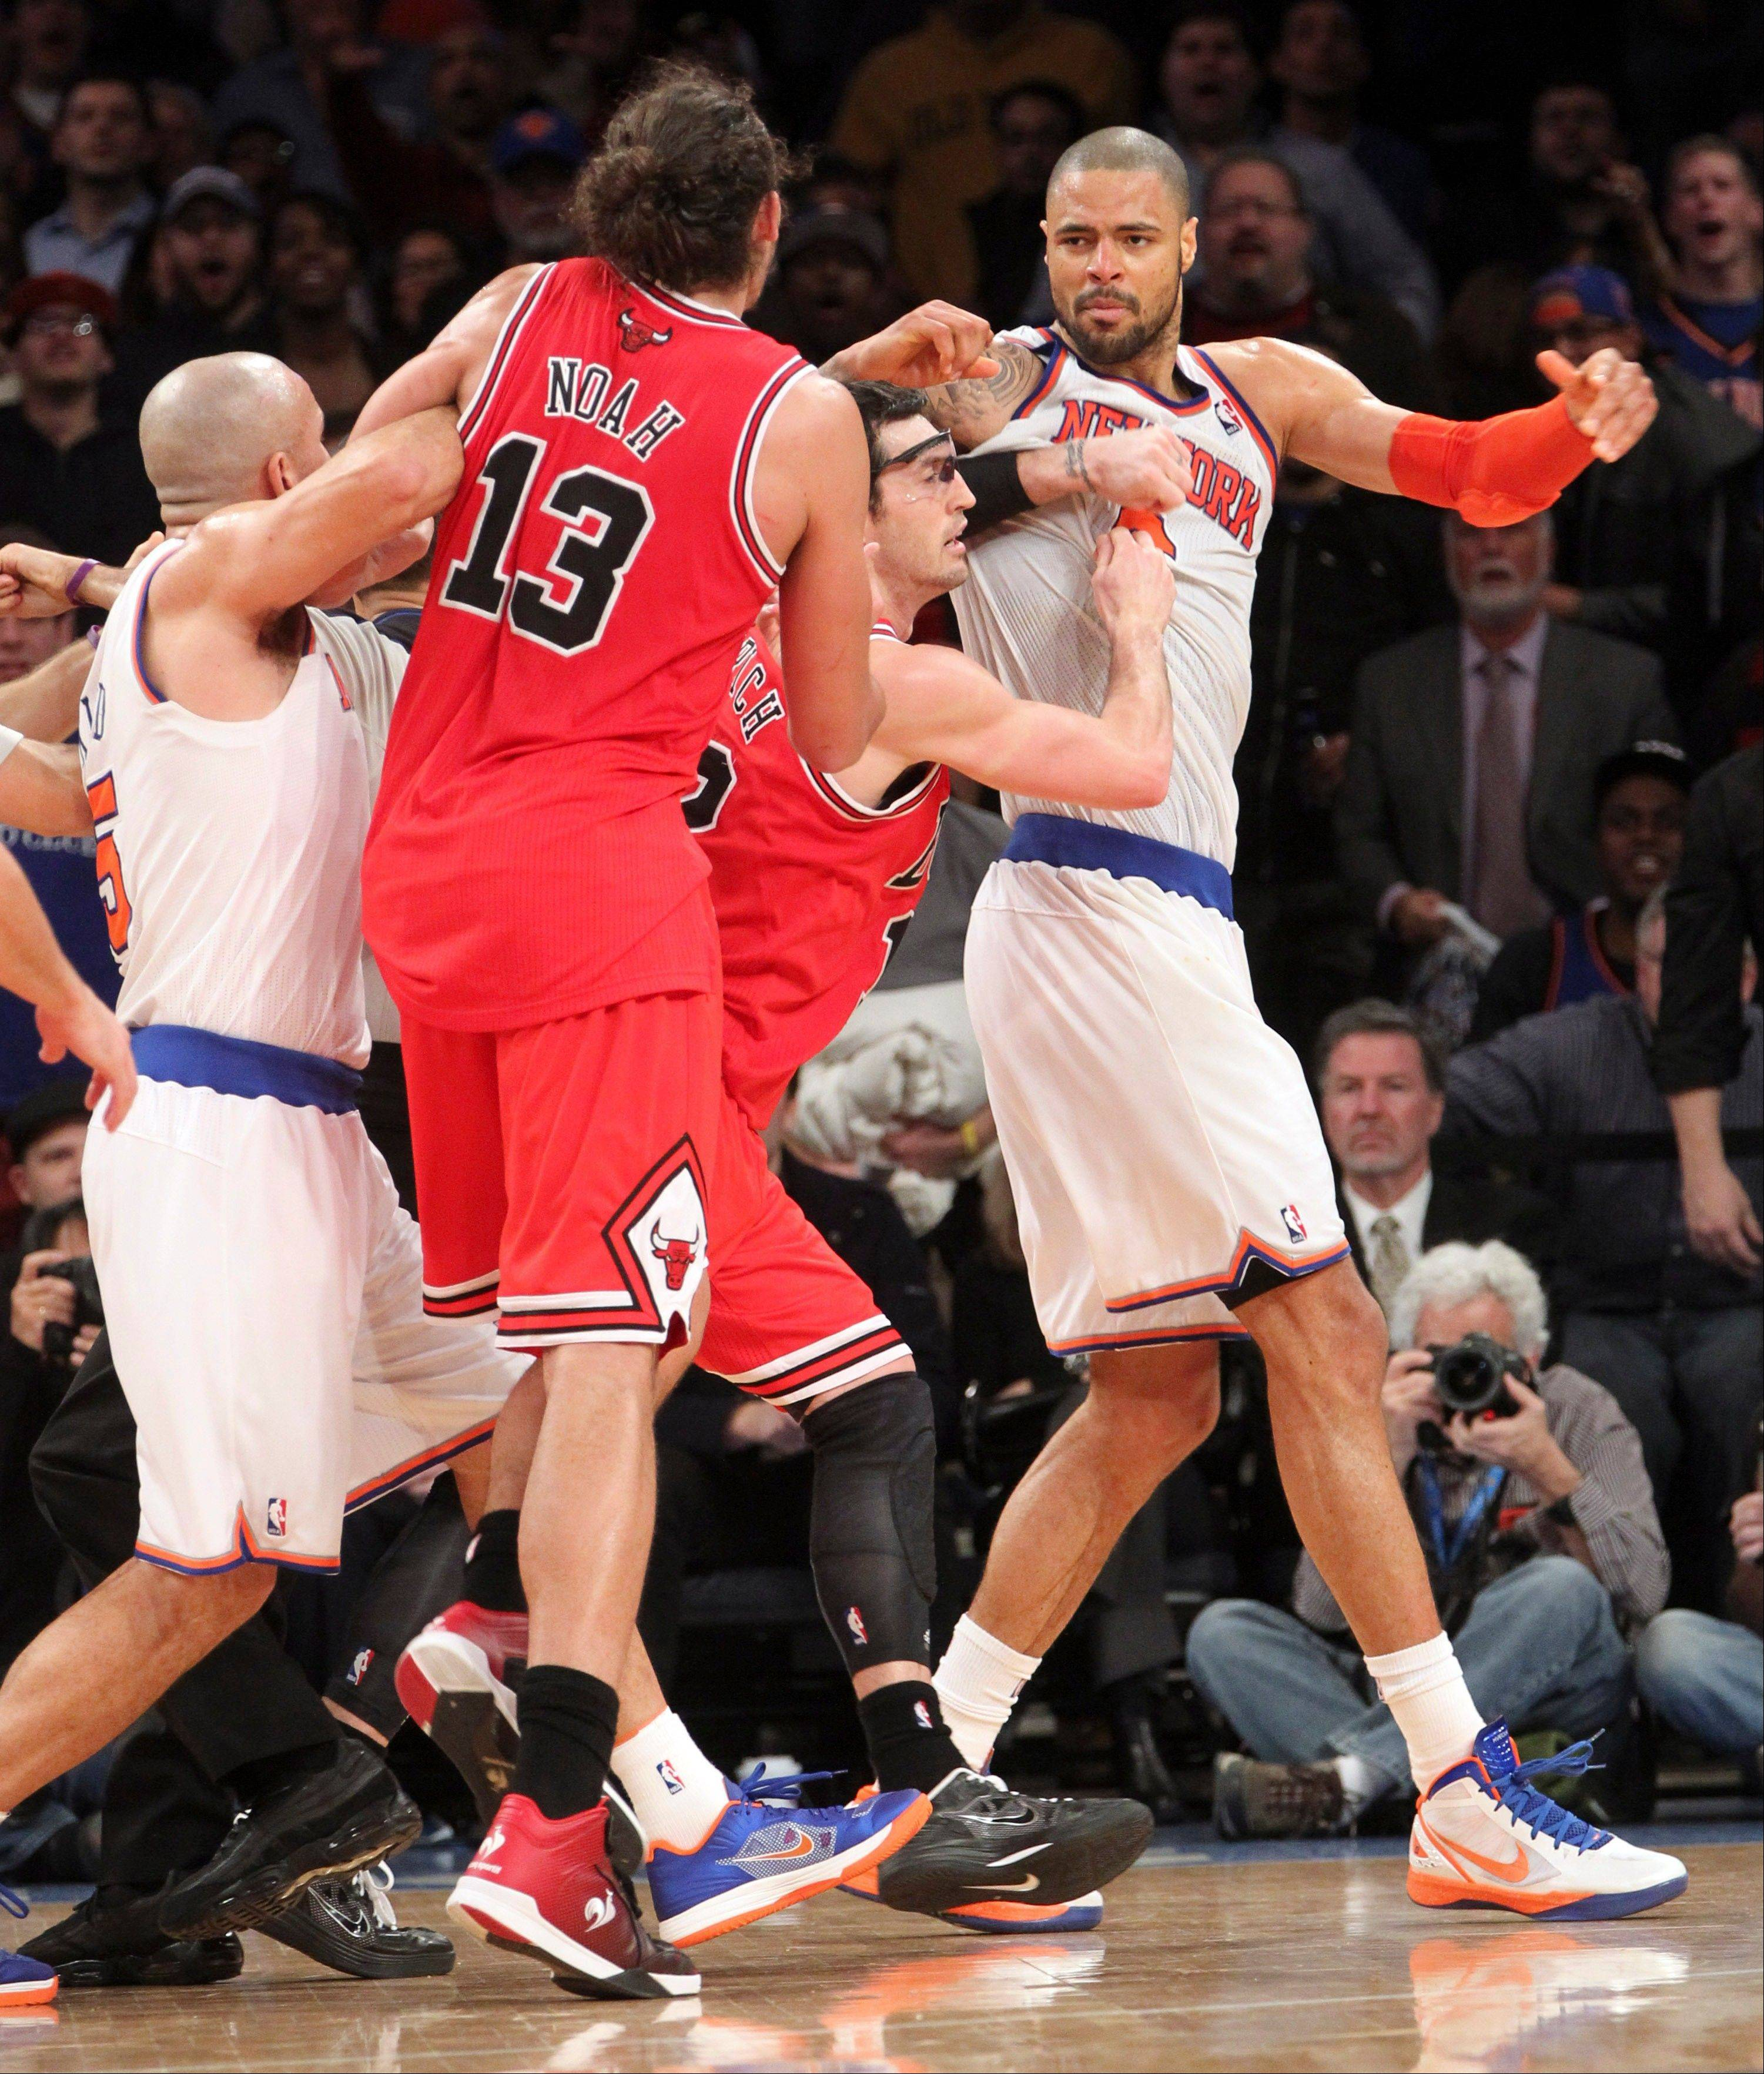 New York Knicks guard Jason Kidd, left, and Bulls guard Kirk Hinrich, second from right, separate Bulls forward Joakim Noah (13) and Knicks center Tyson Chandler, right, Friday during the second half at Madison Square Garden in New York. The Bulls defeated the Knicks 110-96.